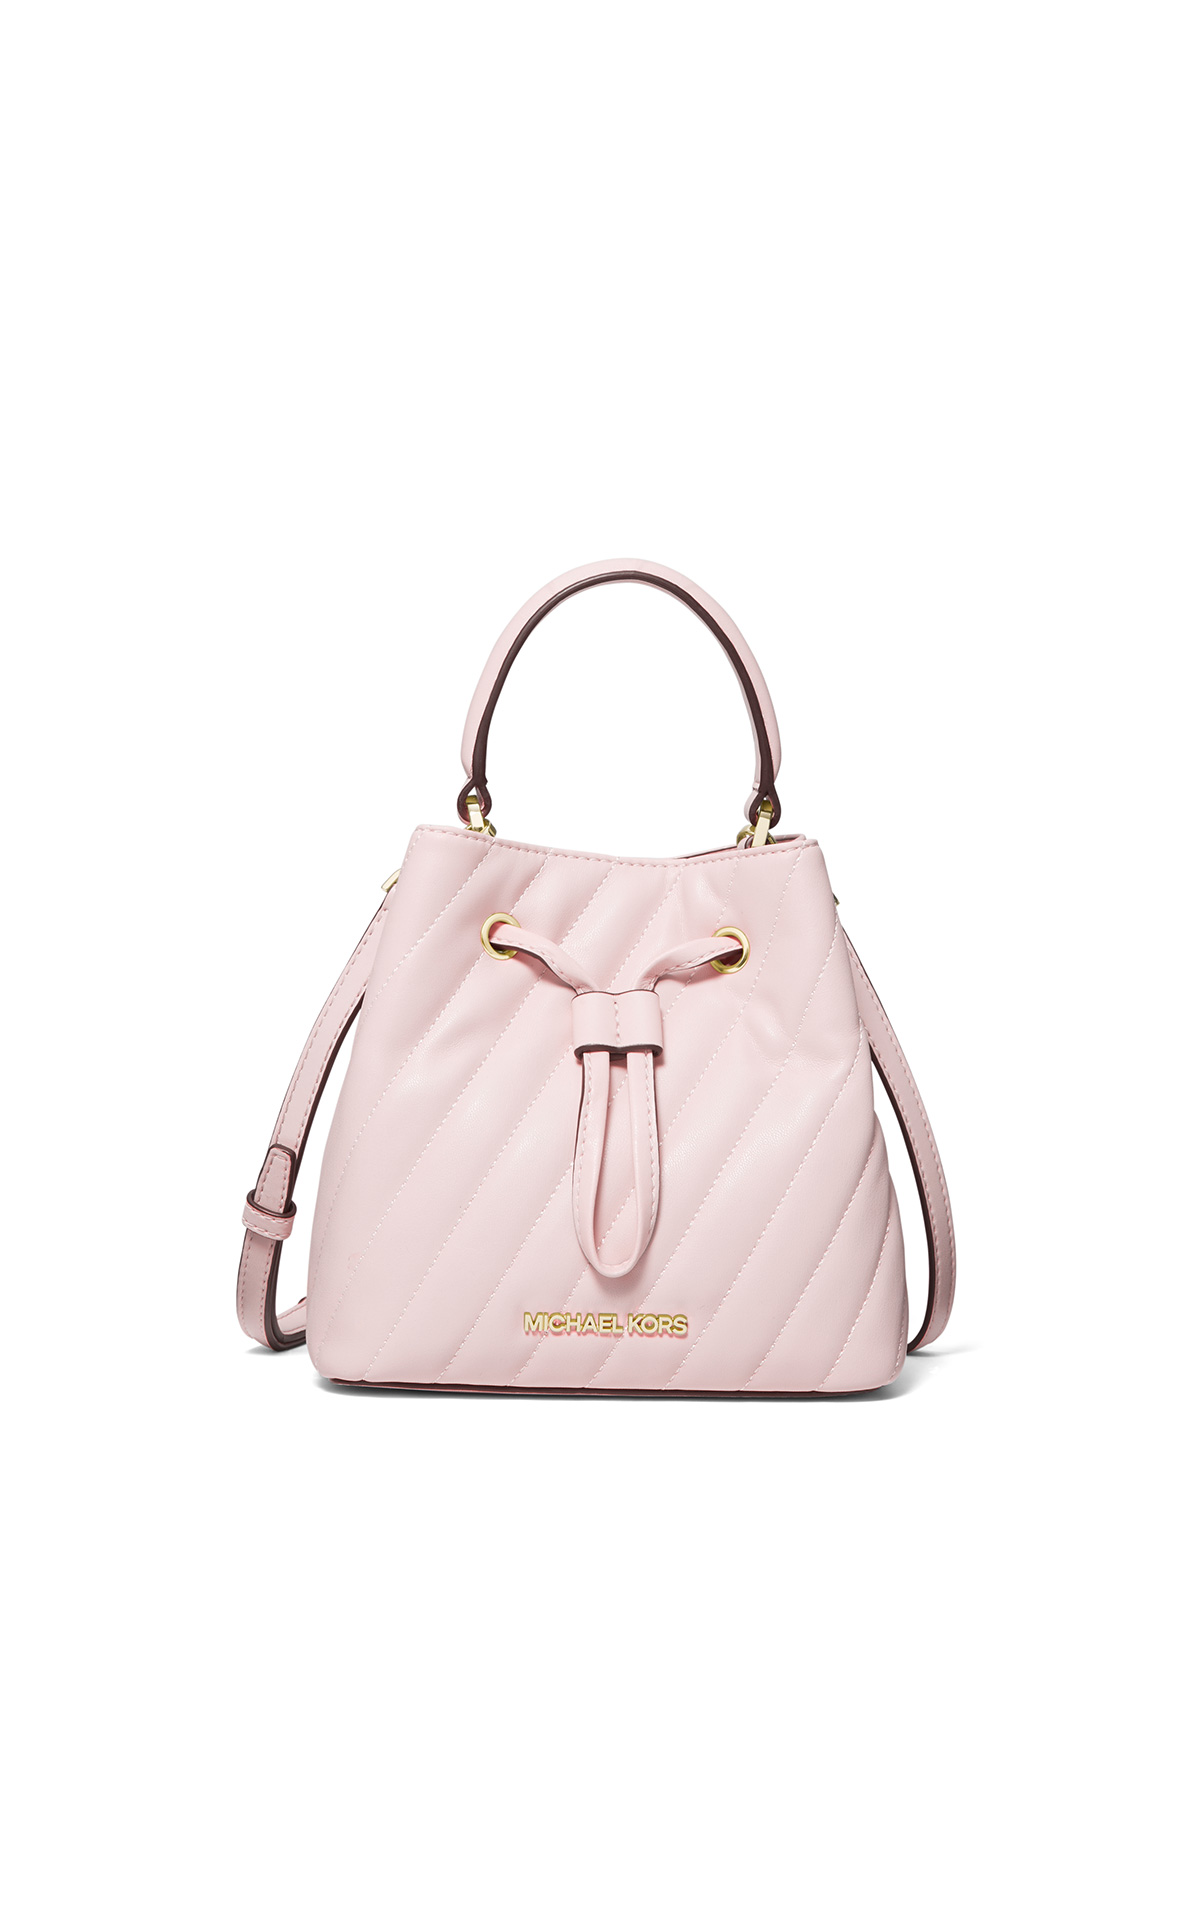 Michael Kors Bucket Messenger in powder blush at The Bicester Village Shopping Collection